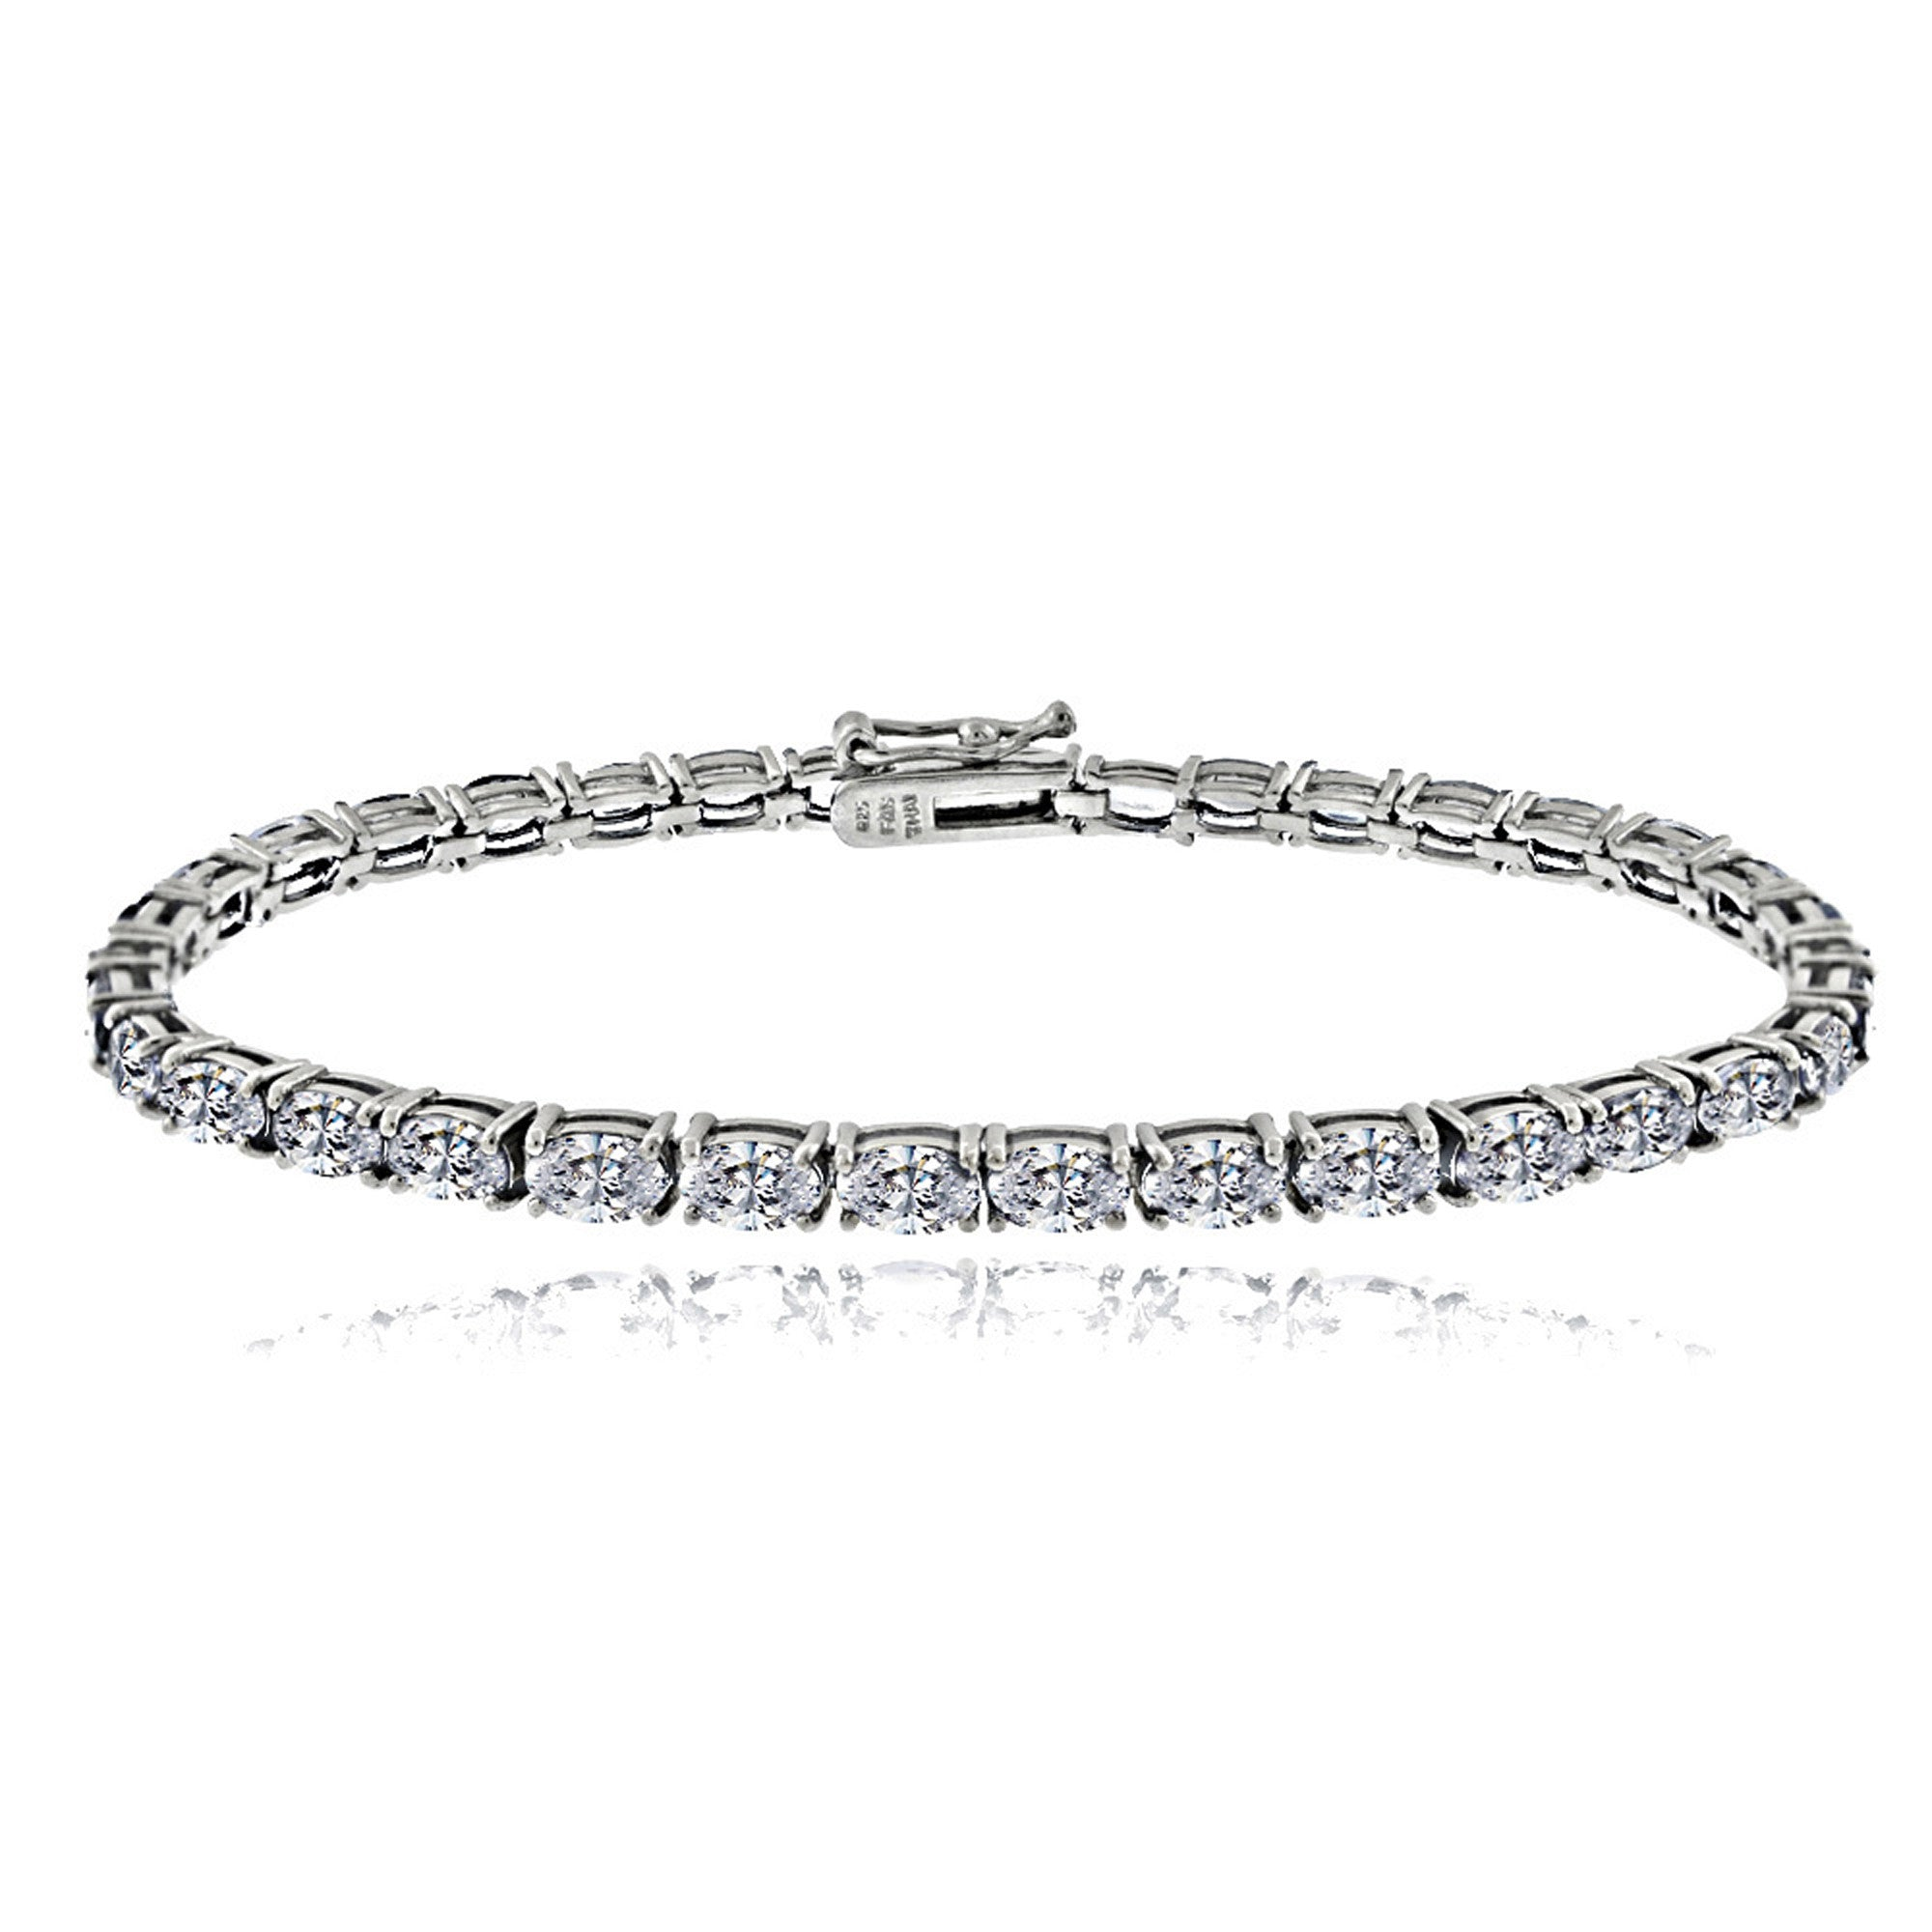 Birthstone Tennis Bracelet With CZ & Gem Accents in Sterling Silver - April Cubic Zirconia